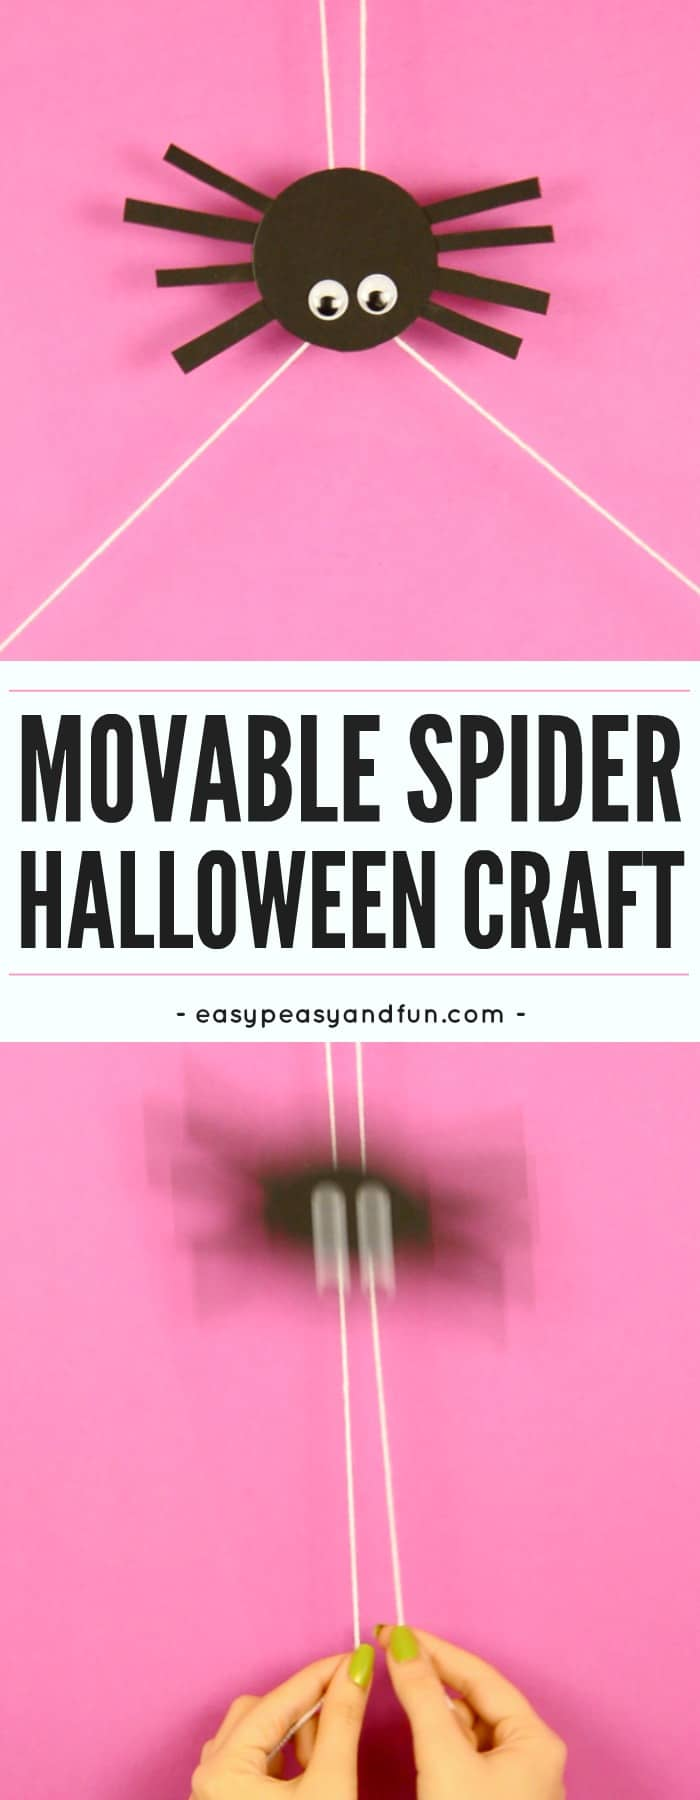 Movable Spider Craft Easy Peasy And Fun